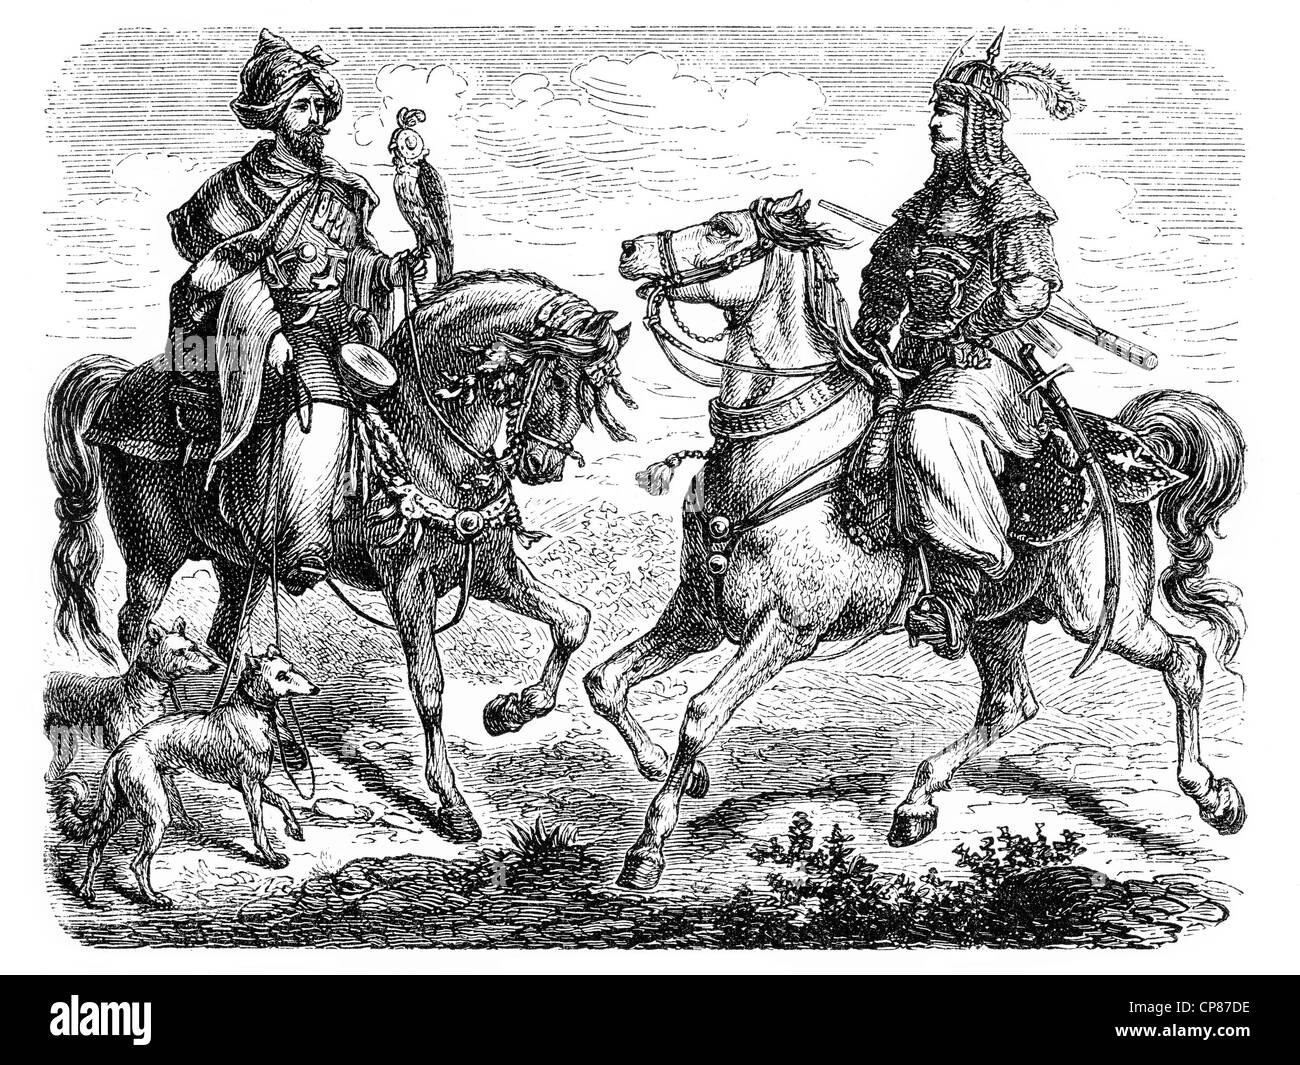 Chiefs in Lebanon, historical engraving, 19th Century Häuptlinge im Libanon, historischer Stich - Stock Image